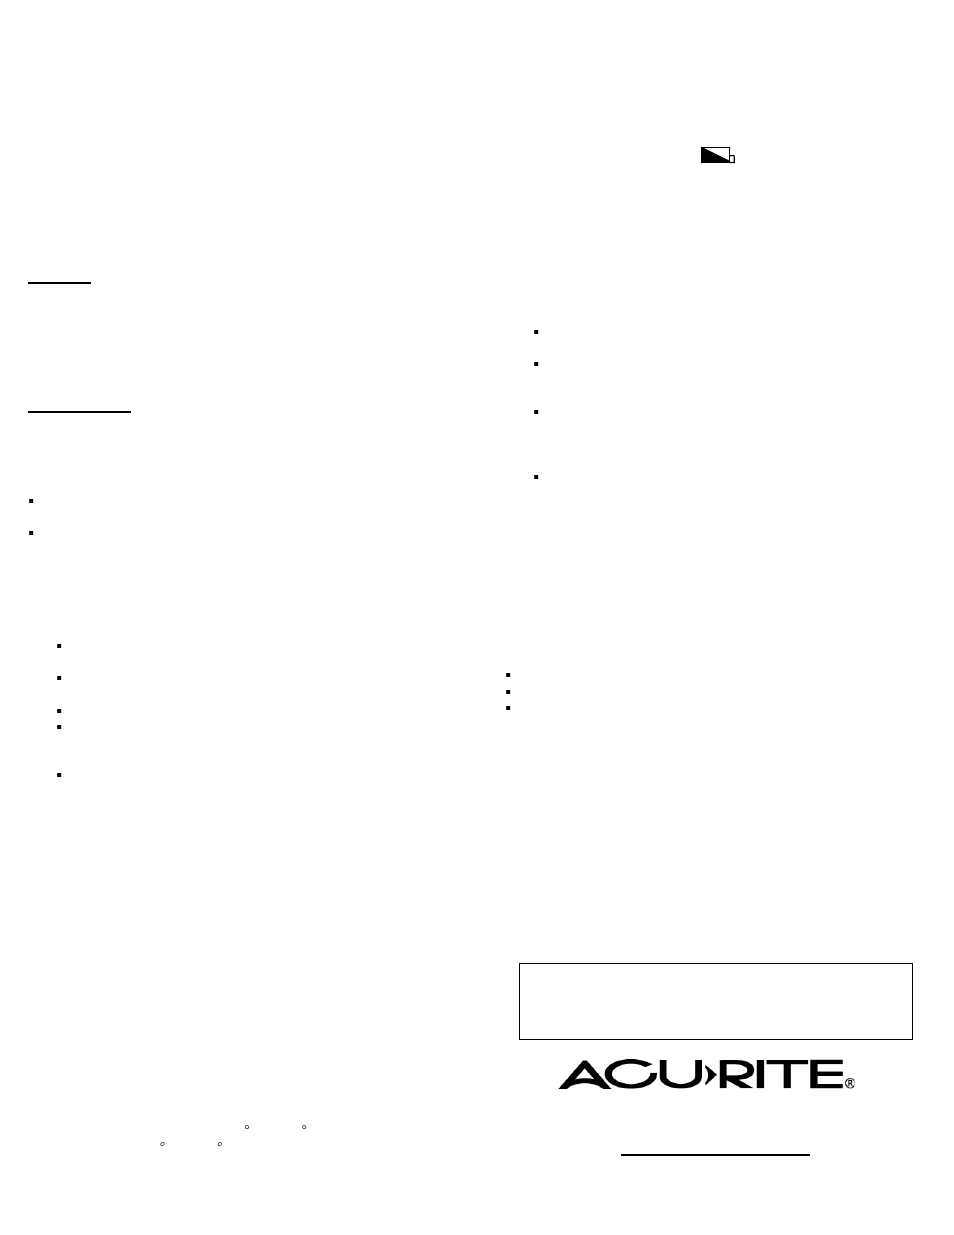 Acurite 00591w Thermometer User Manual Manual Guide